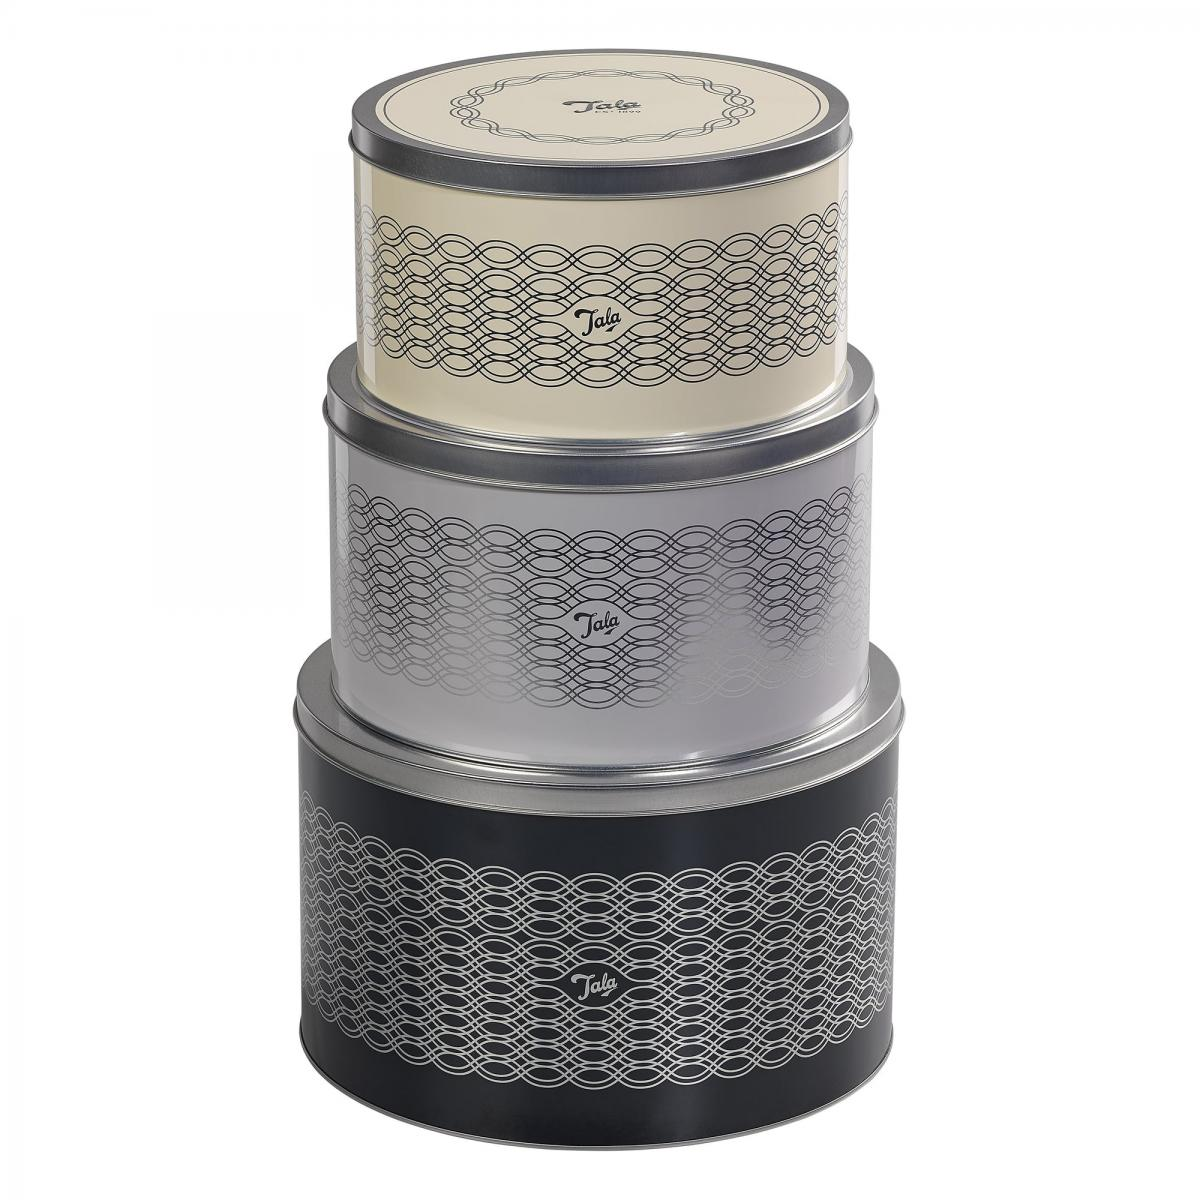 Cake Tins - Set Of 3 – Now Only £18.00